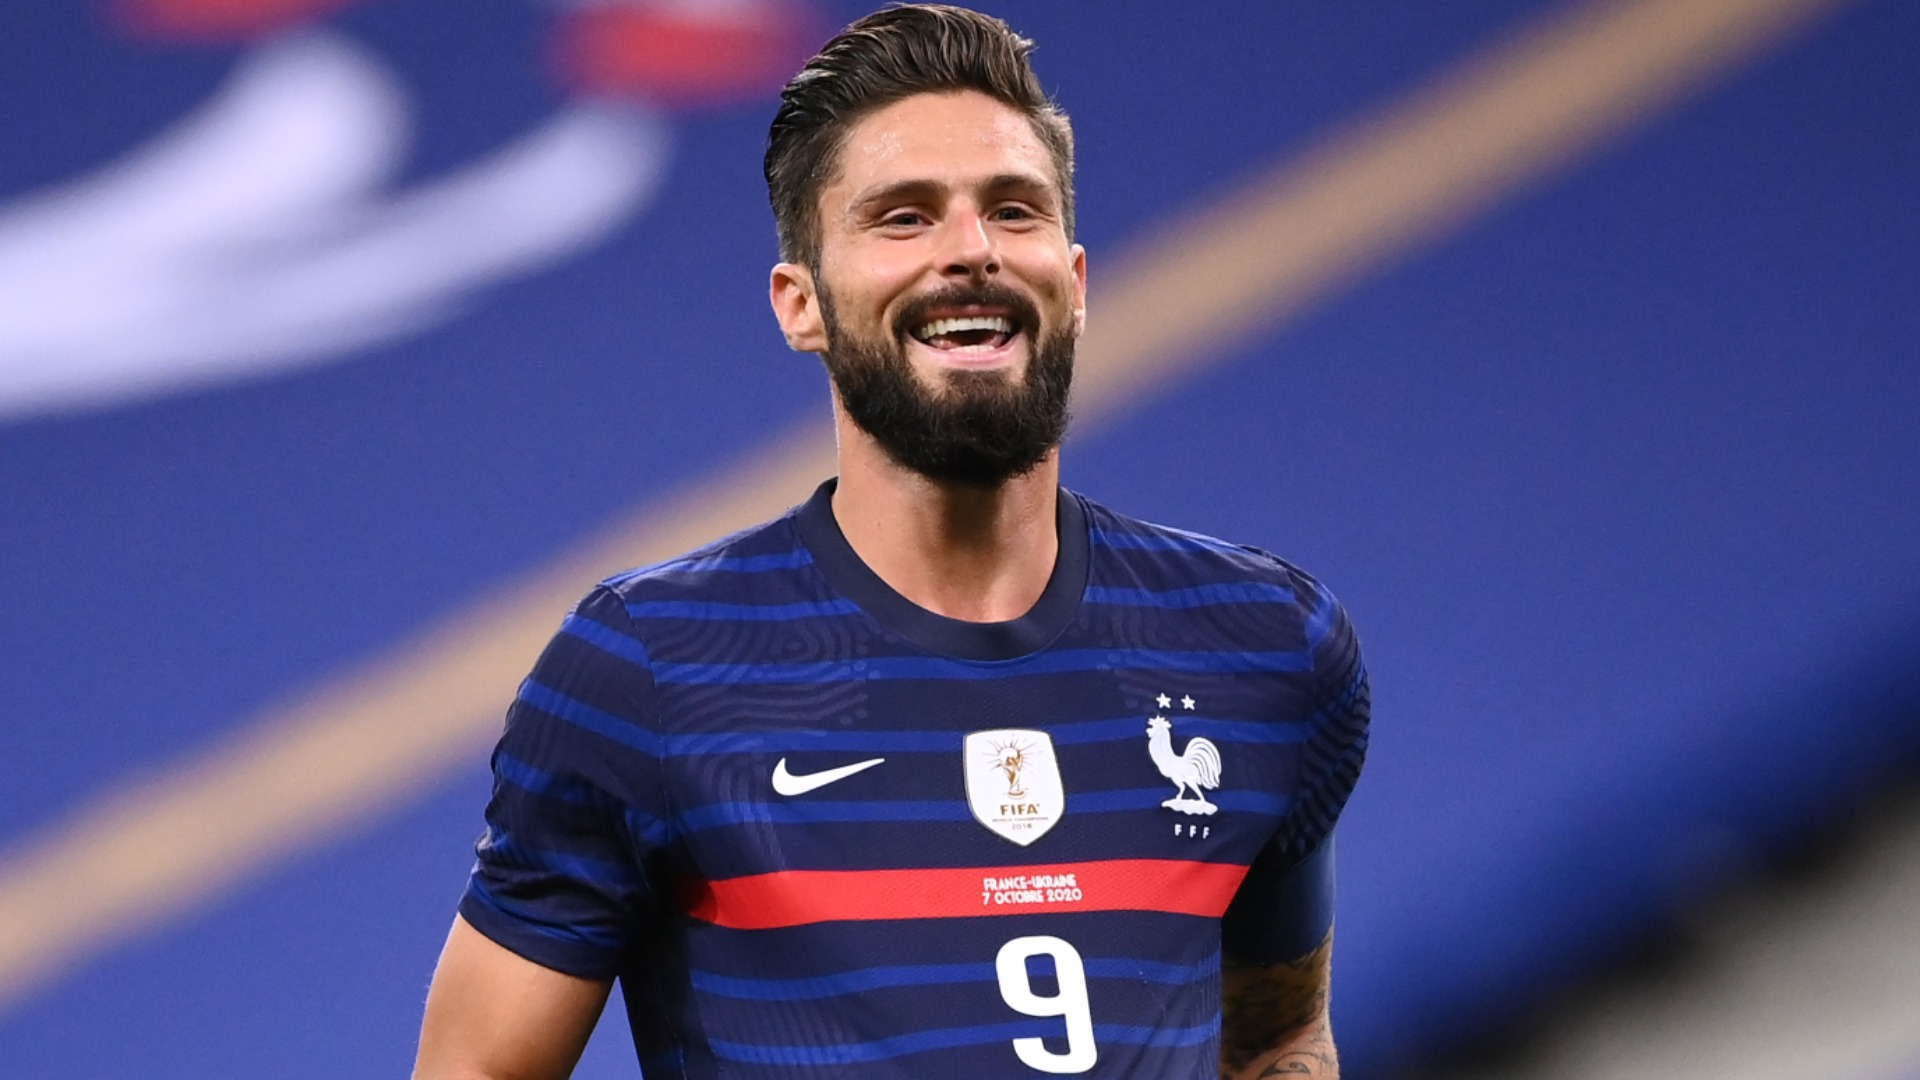 Giroud has Henry record in his sights after overtaking Platini for France goals